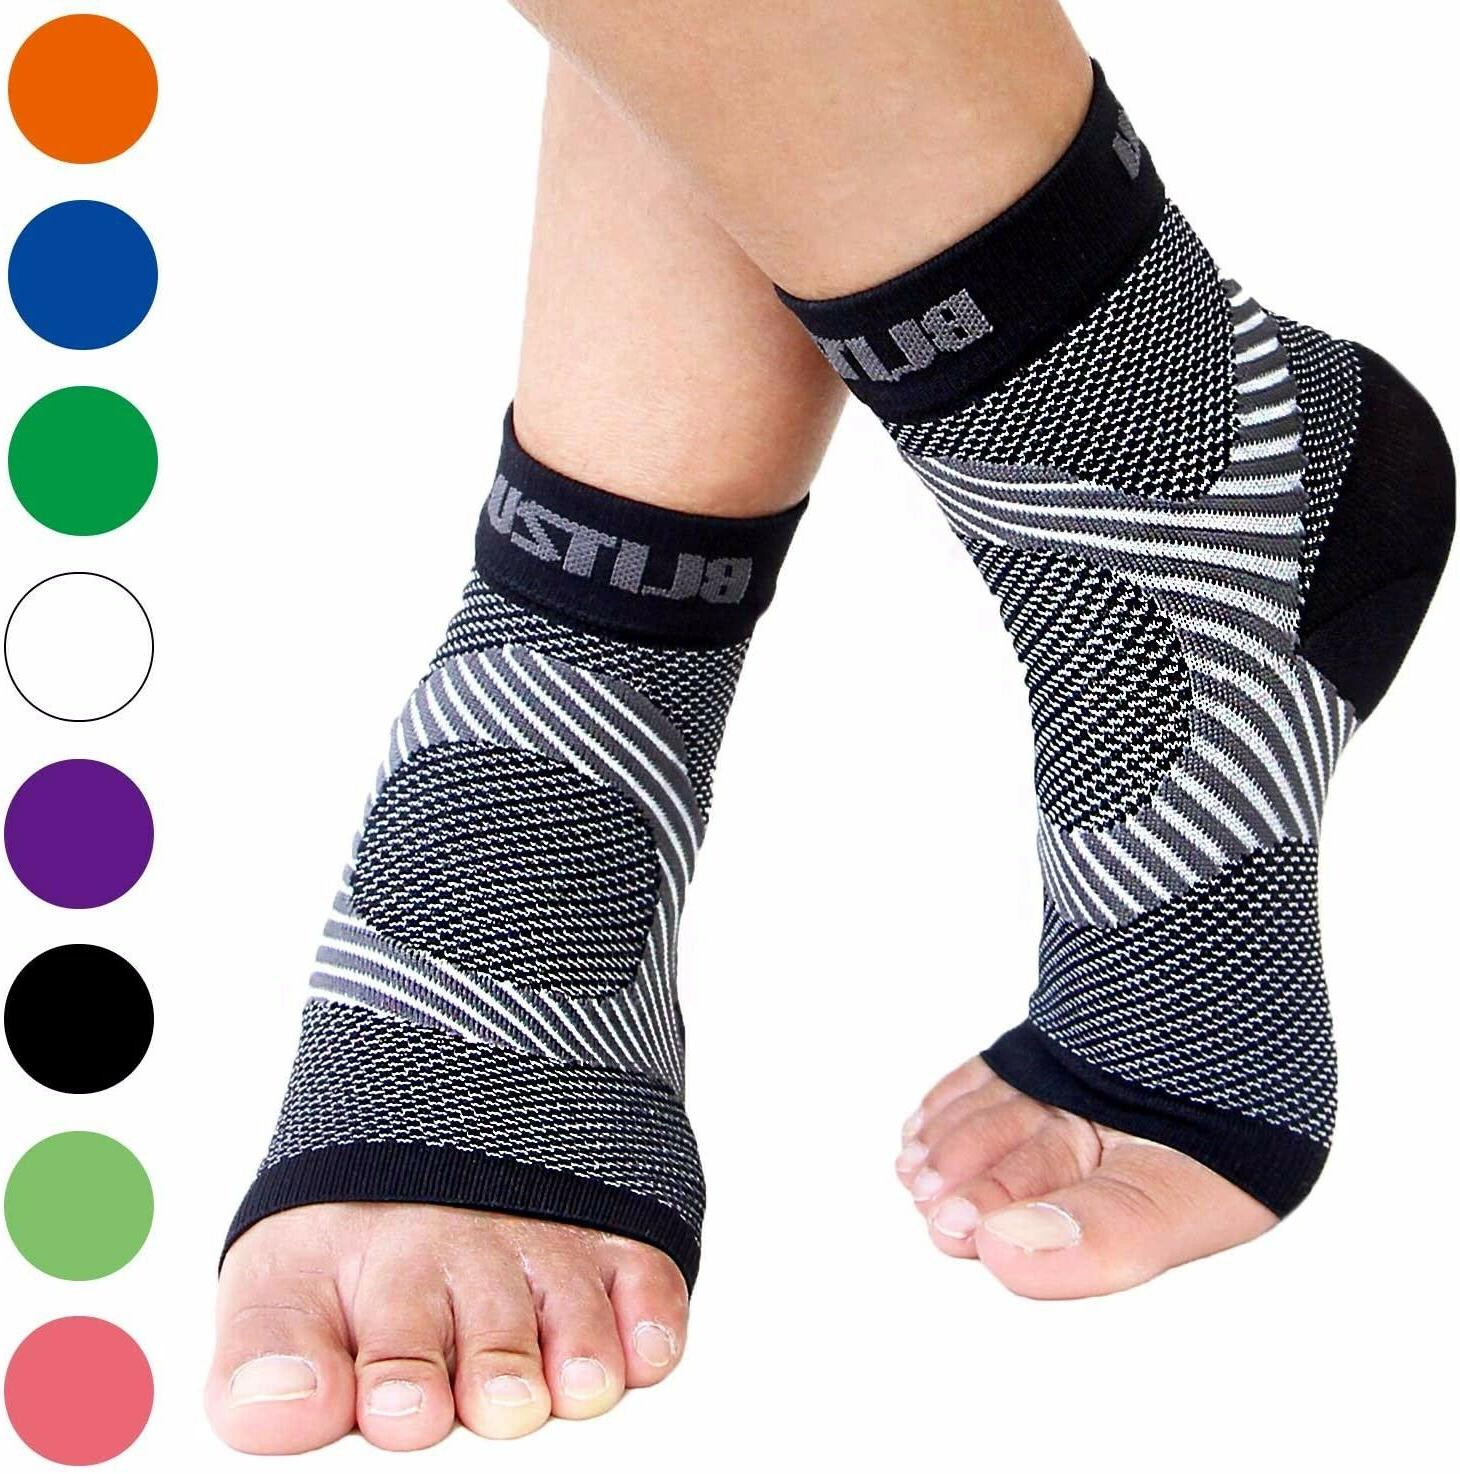 plantar fasciitis socks with arch support best